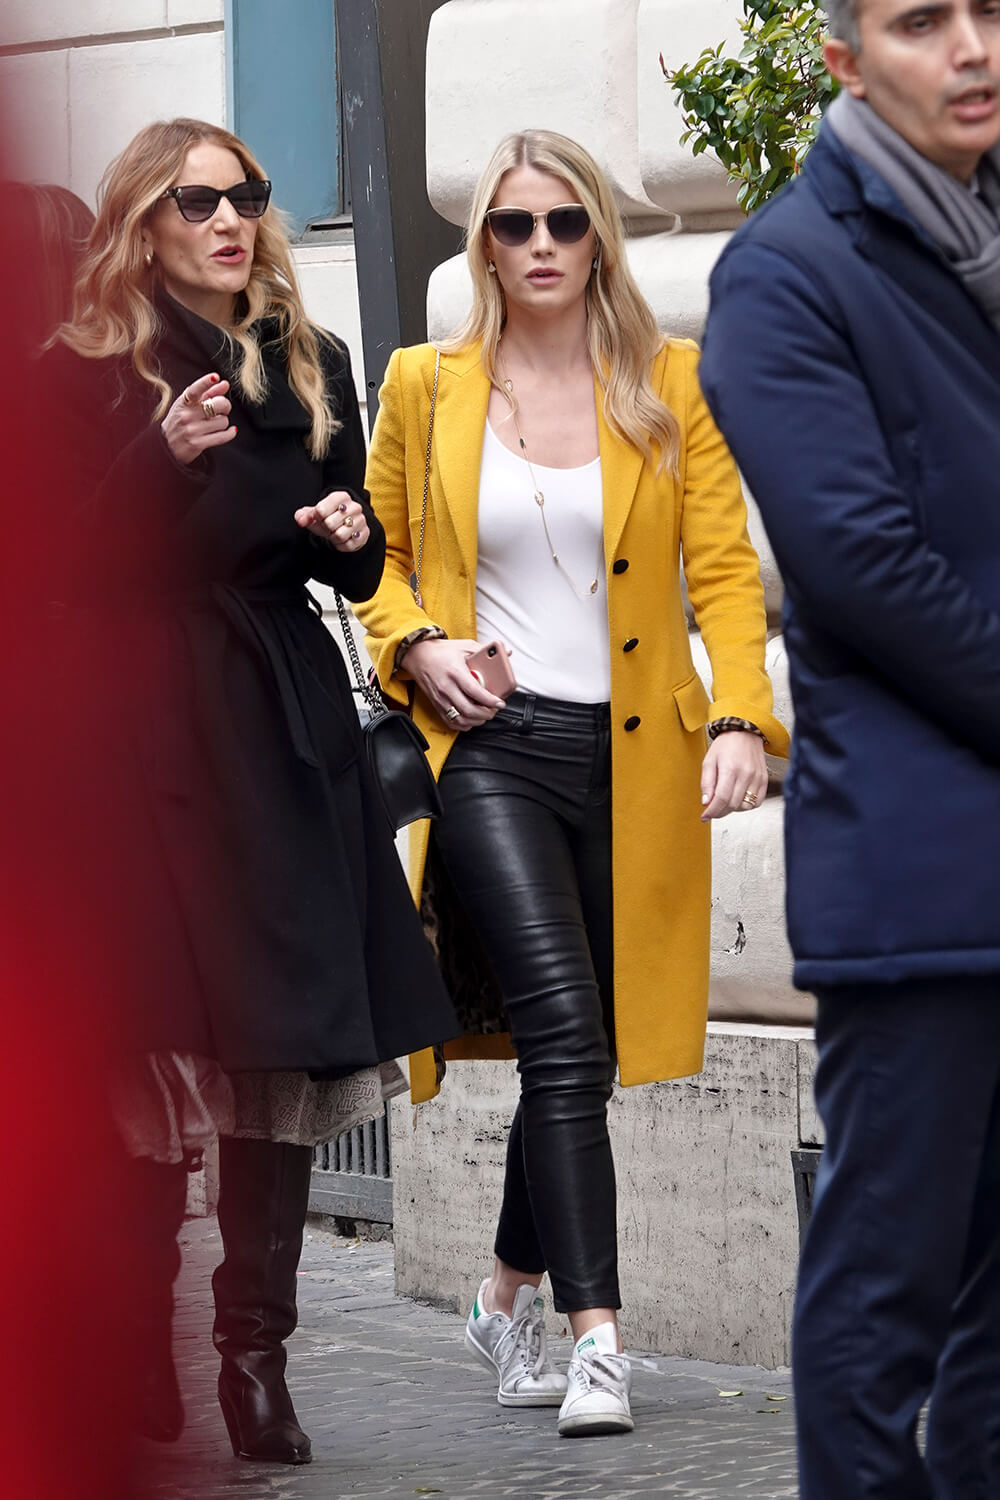 Kitty Spencer spotted wearing a yellow coat while in Rome